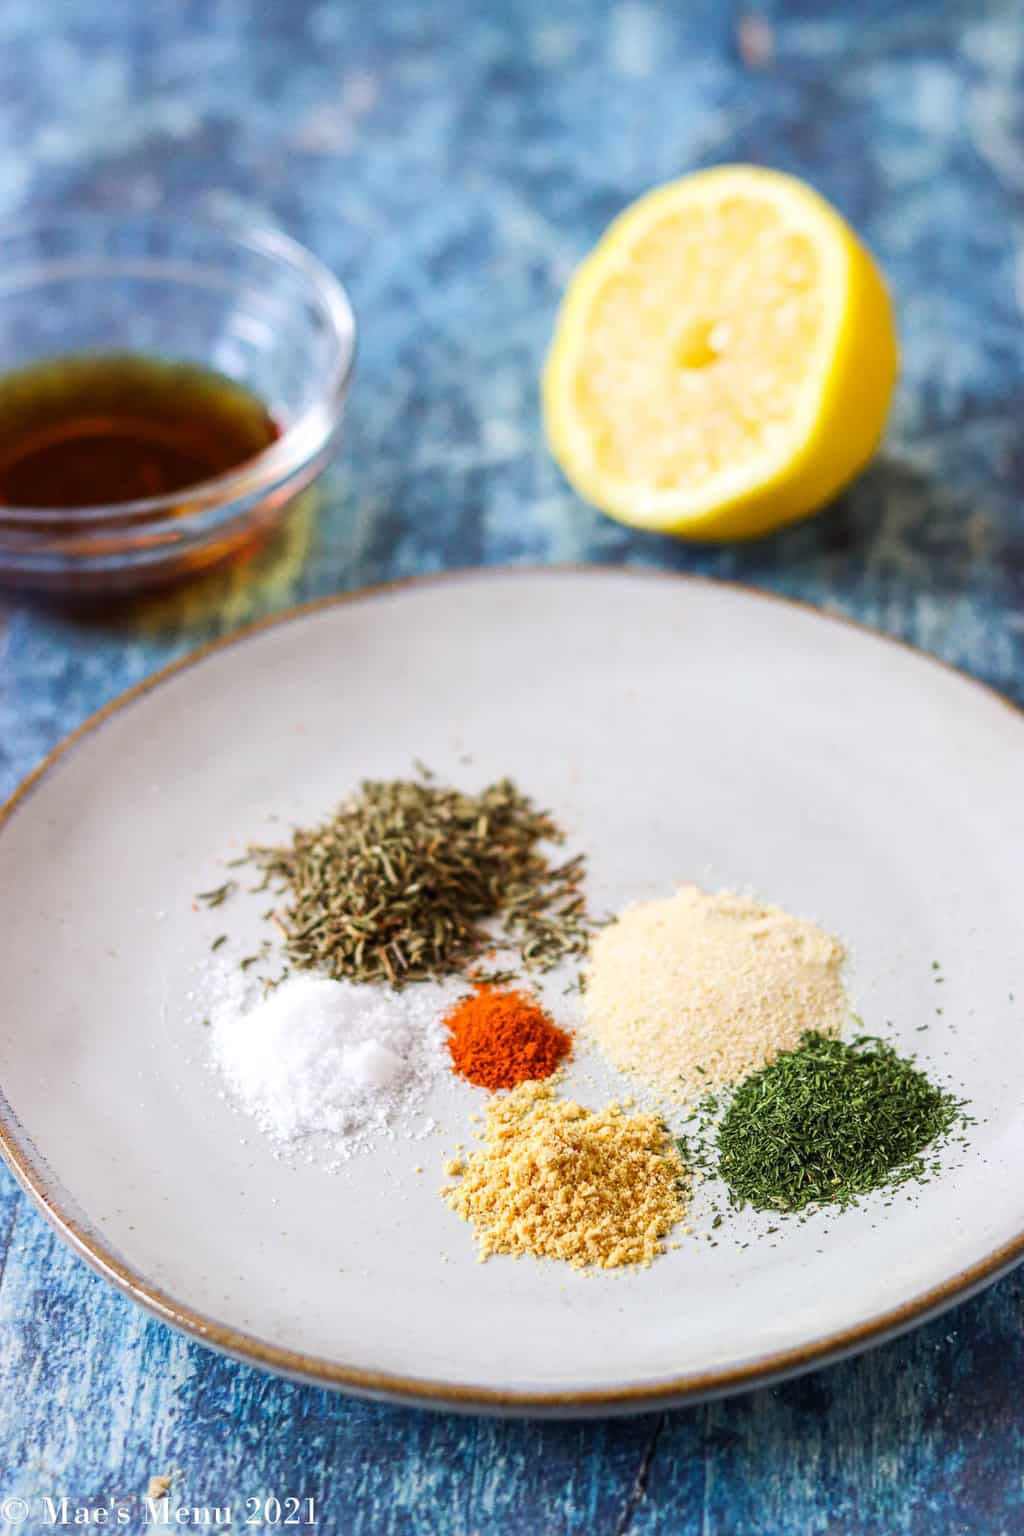 An up-close shot of spices on a plate with lemons and a dish of maple syrup in the background